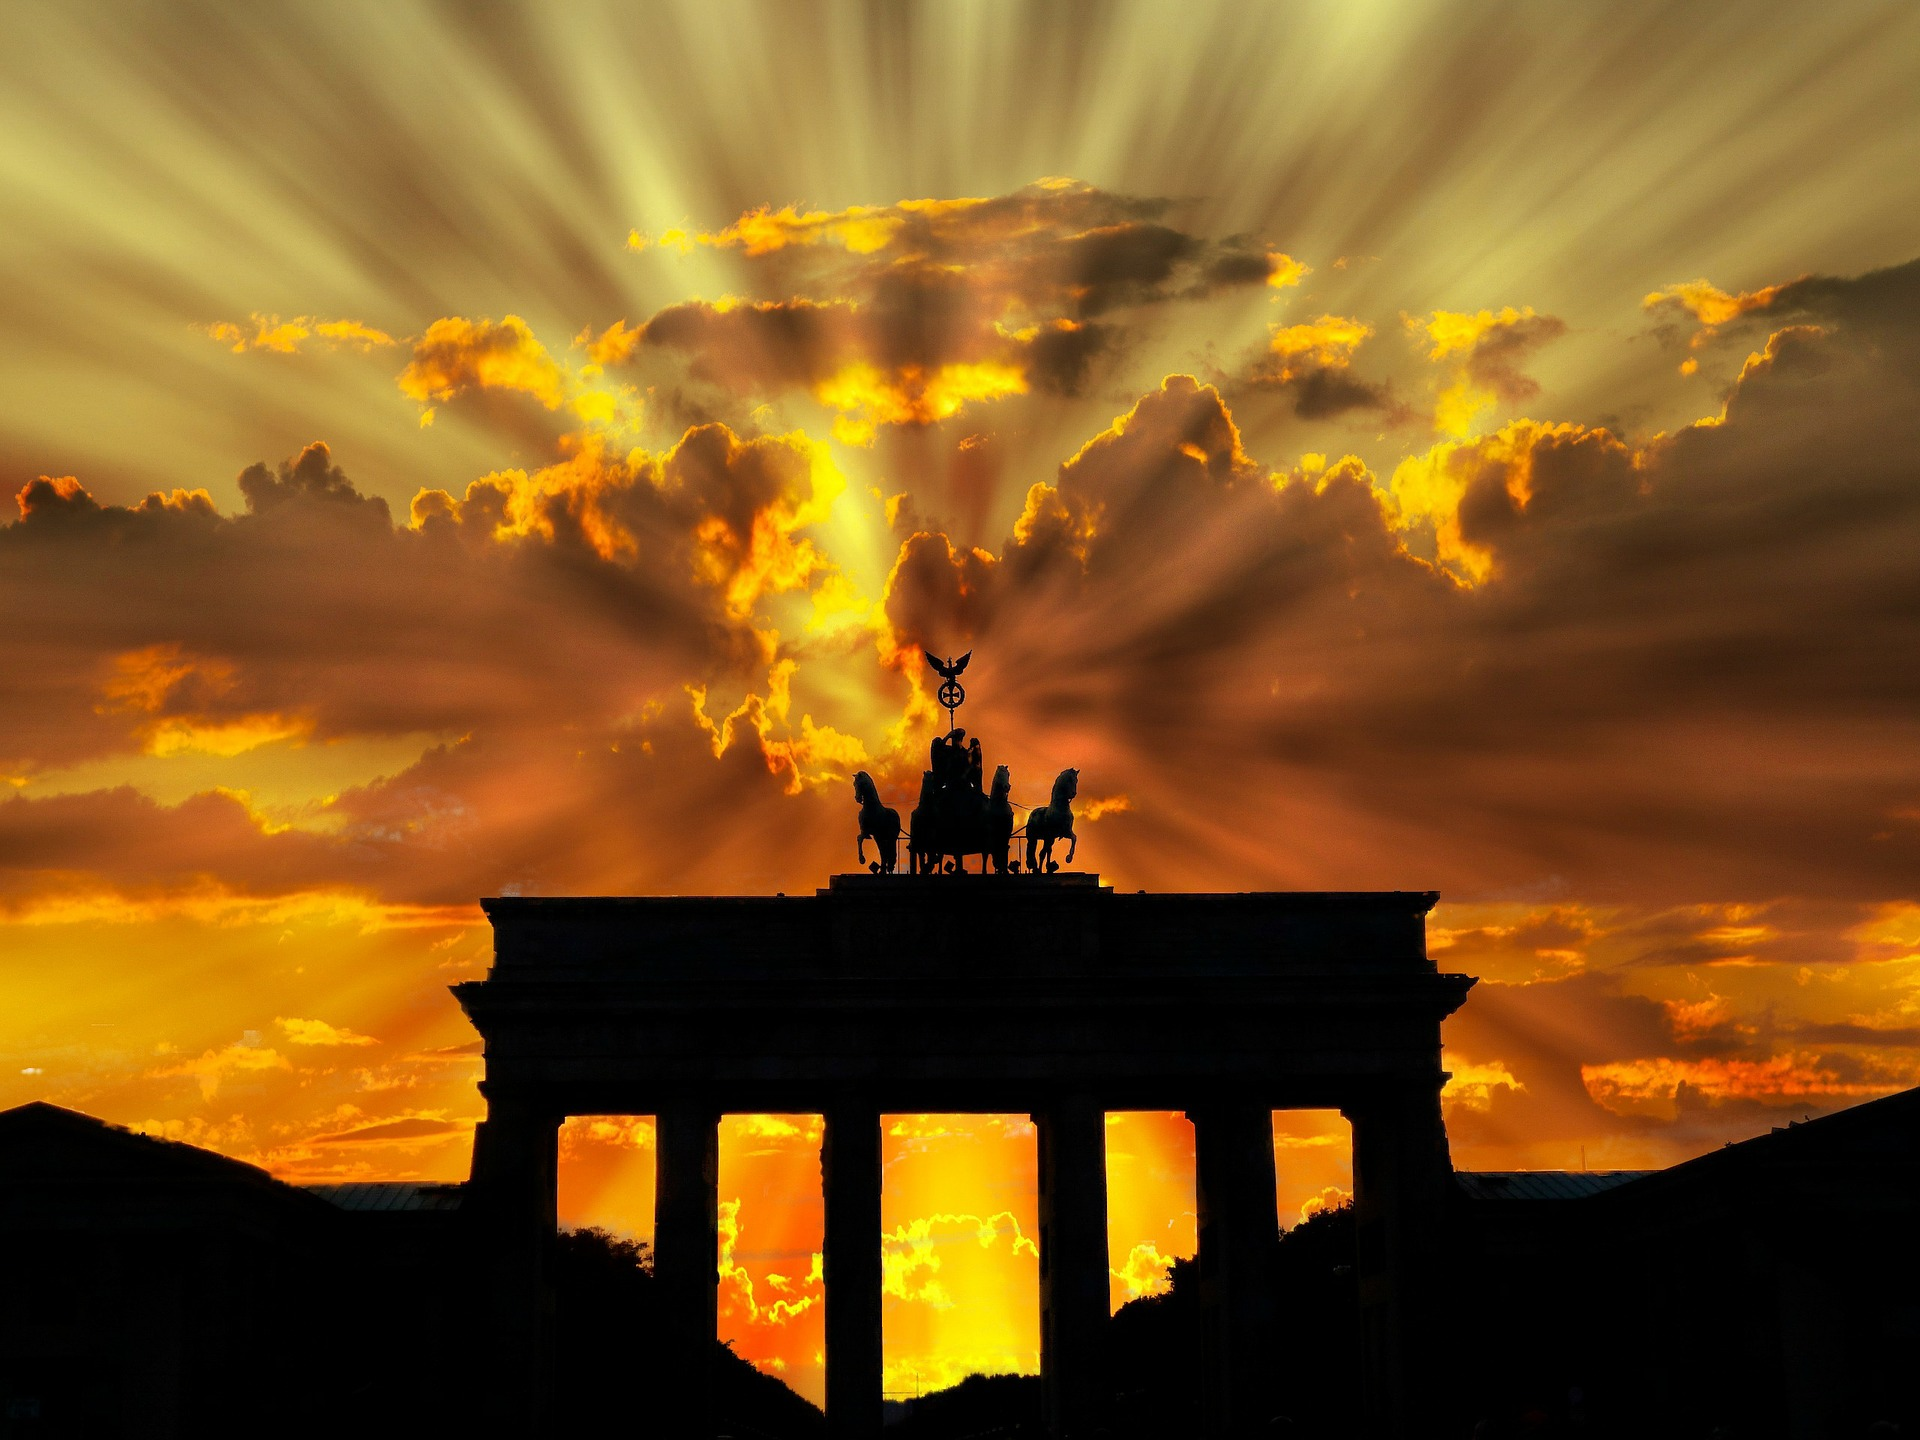 Berlin | DigiNo | 10 Best Locations For Digital Nomads